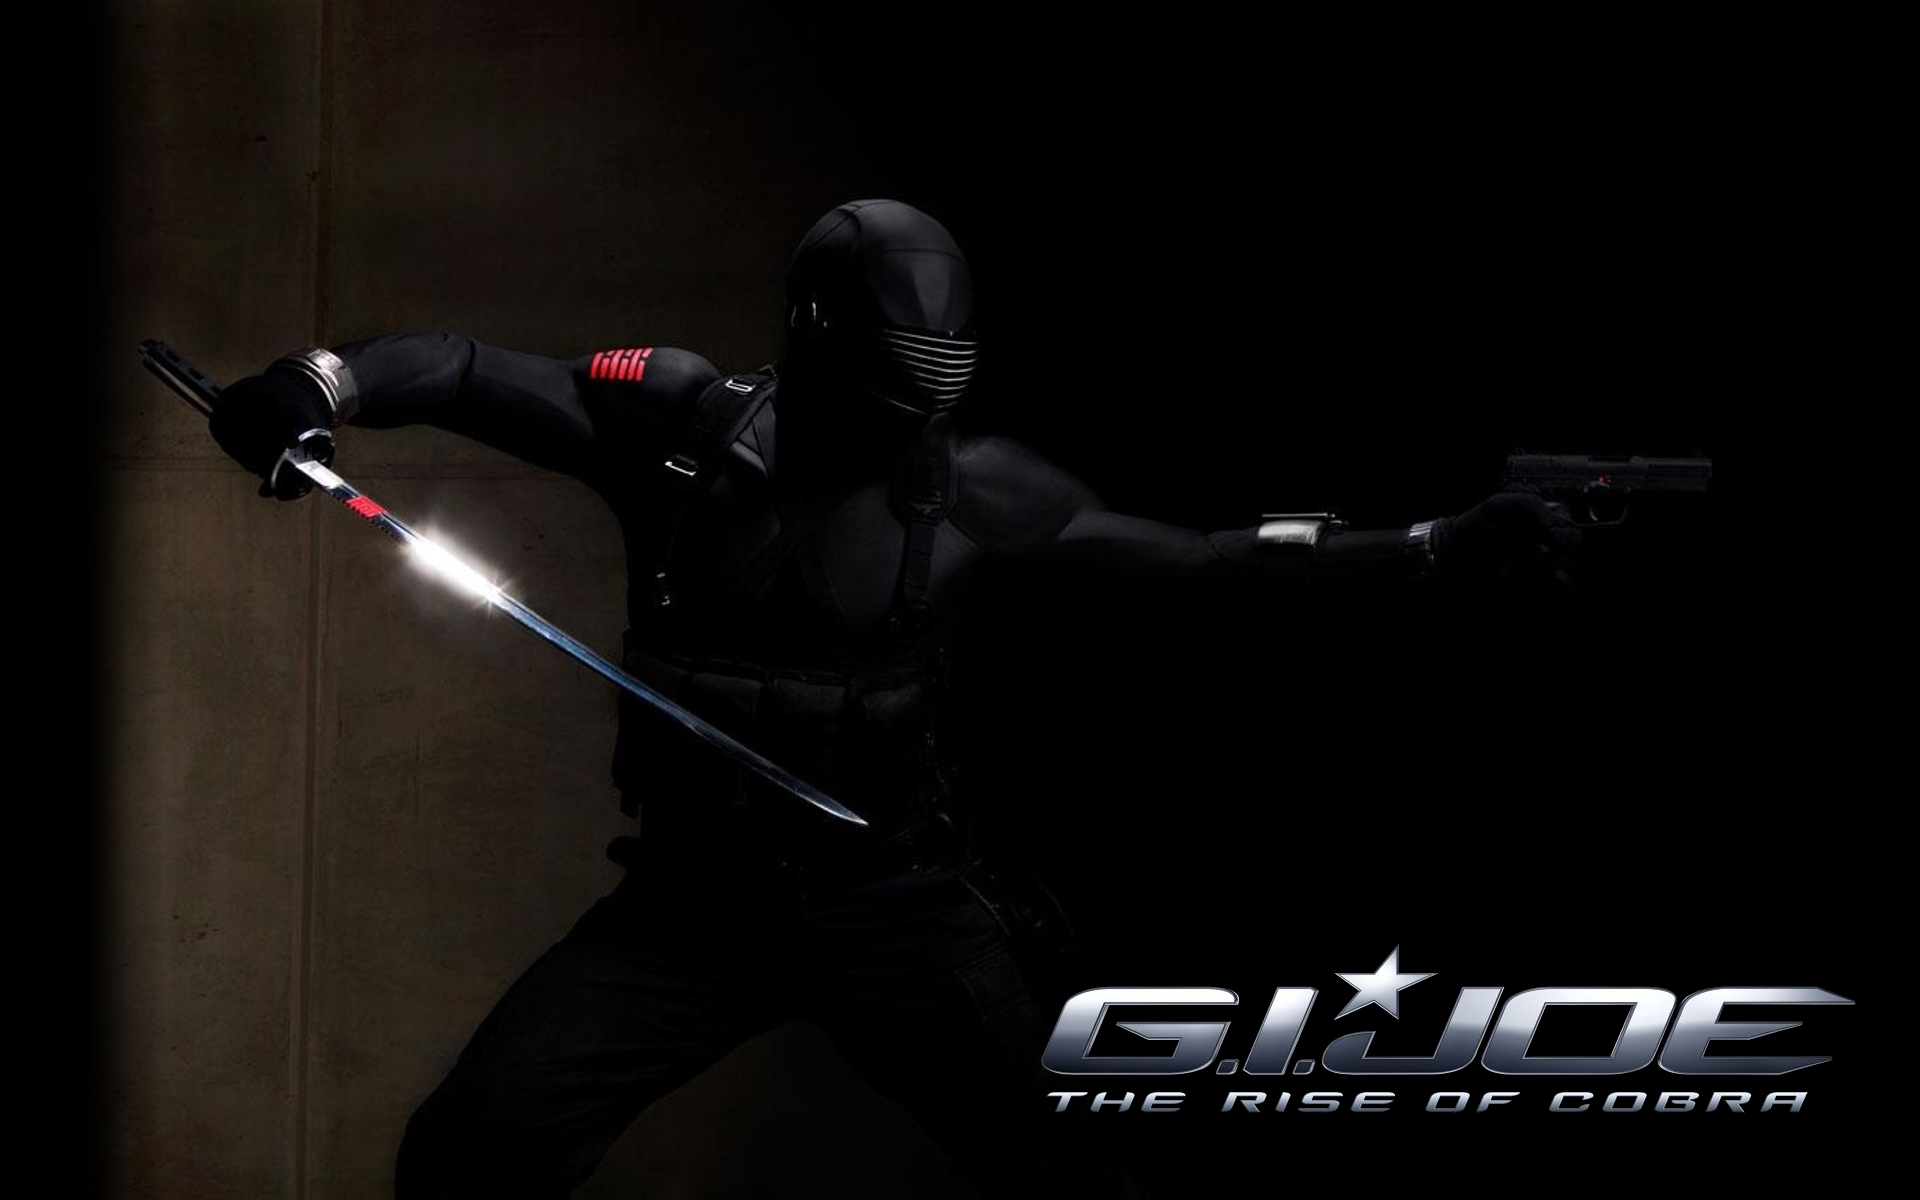 Cobra Gi Joe Wallpaper Gi joe movie the rise of cobra 1920x1200